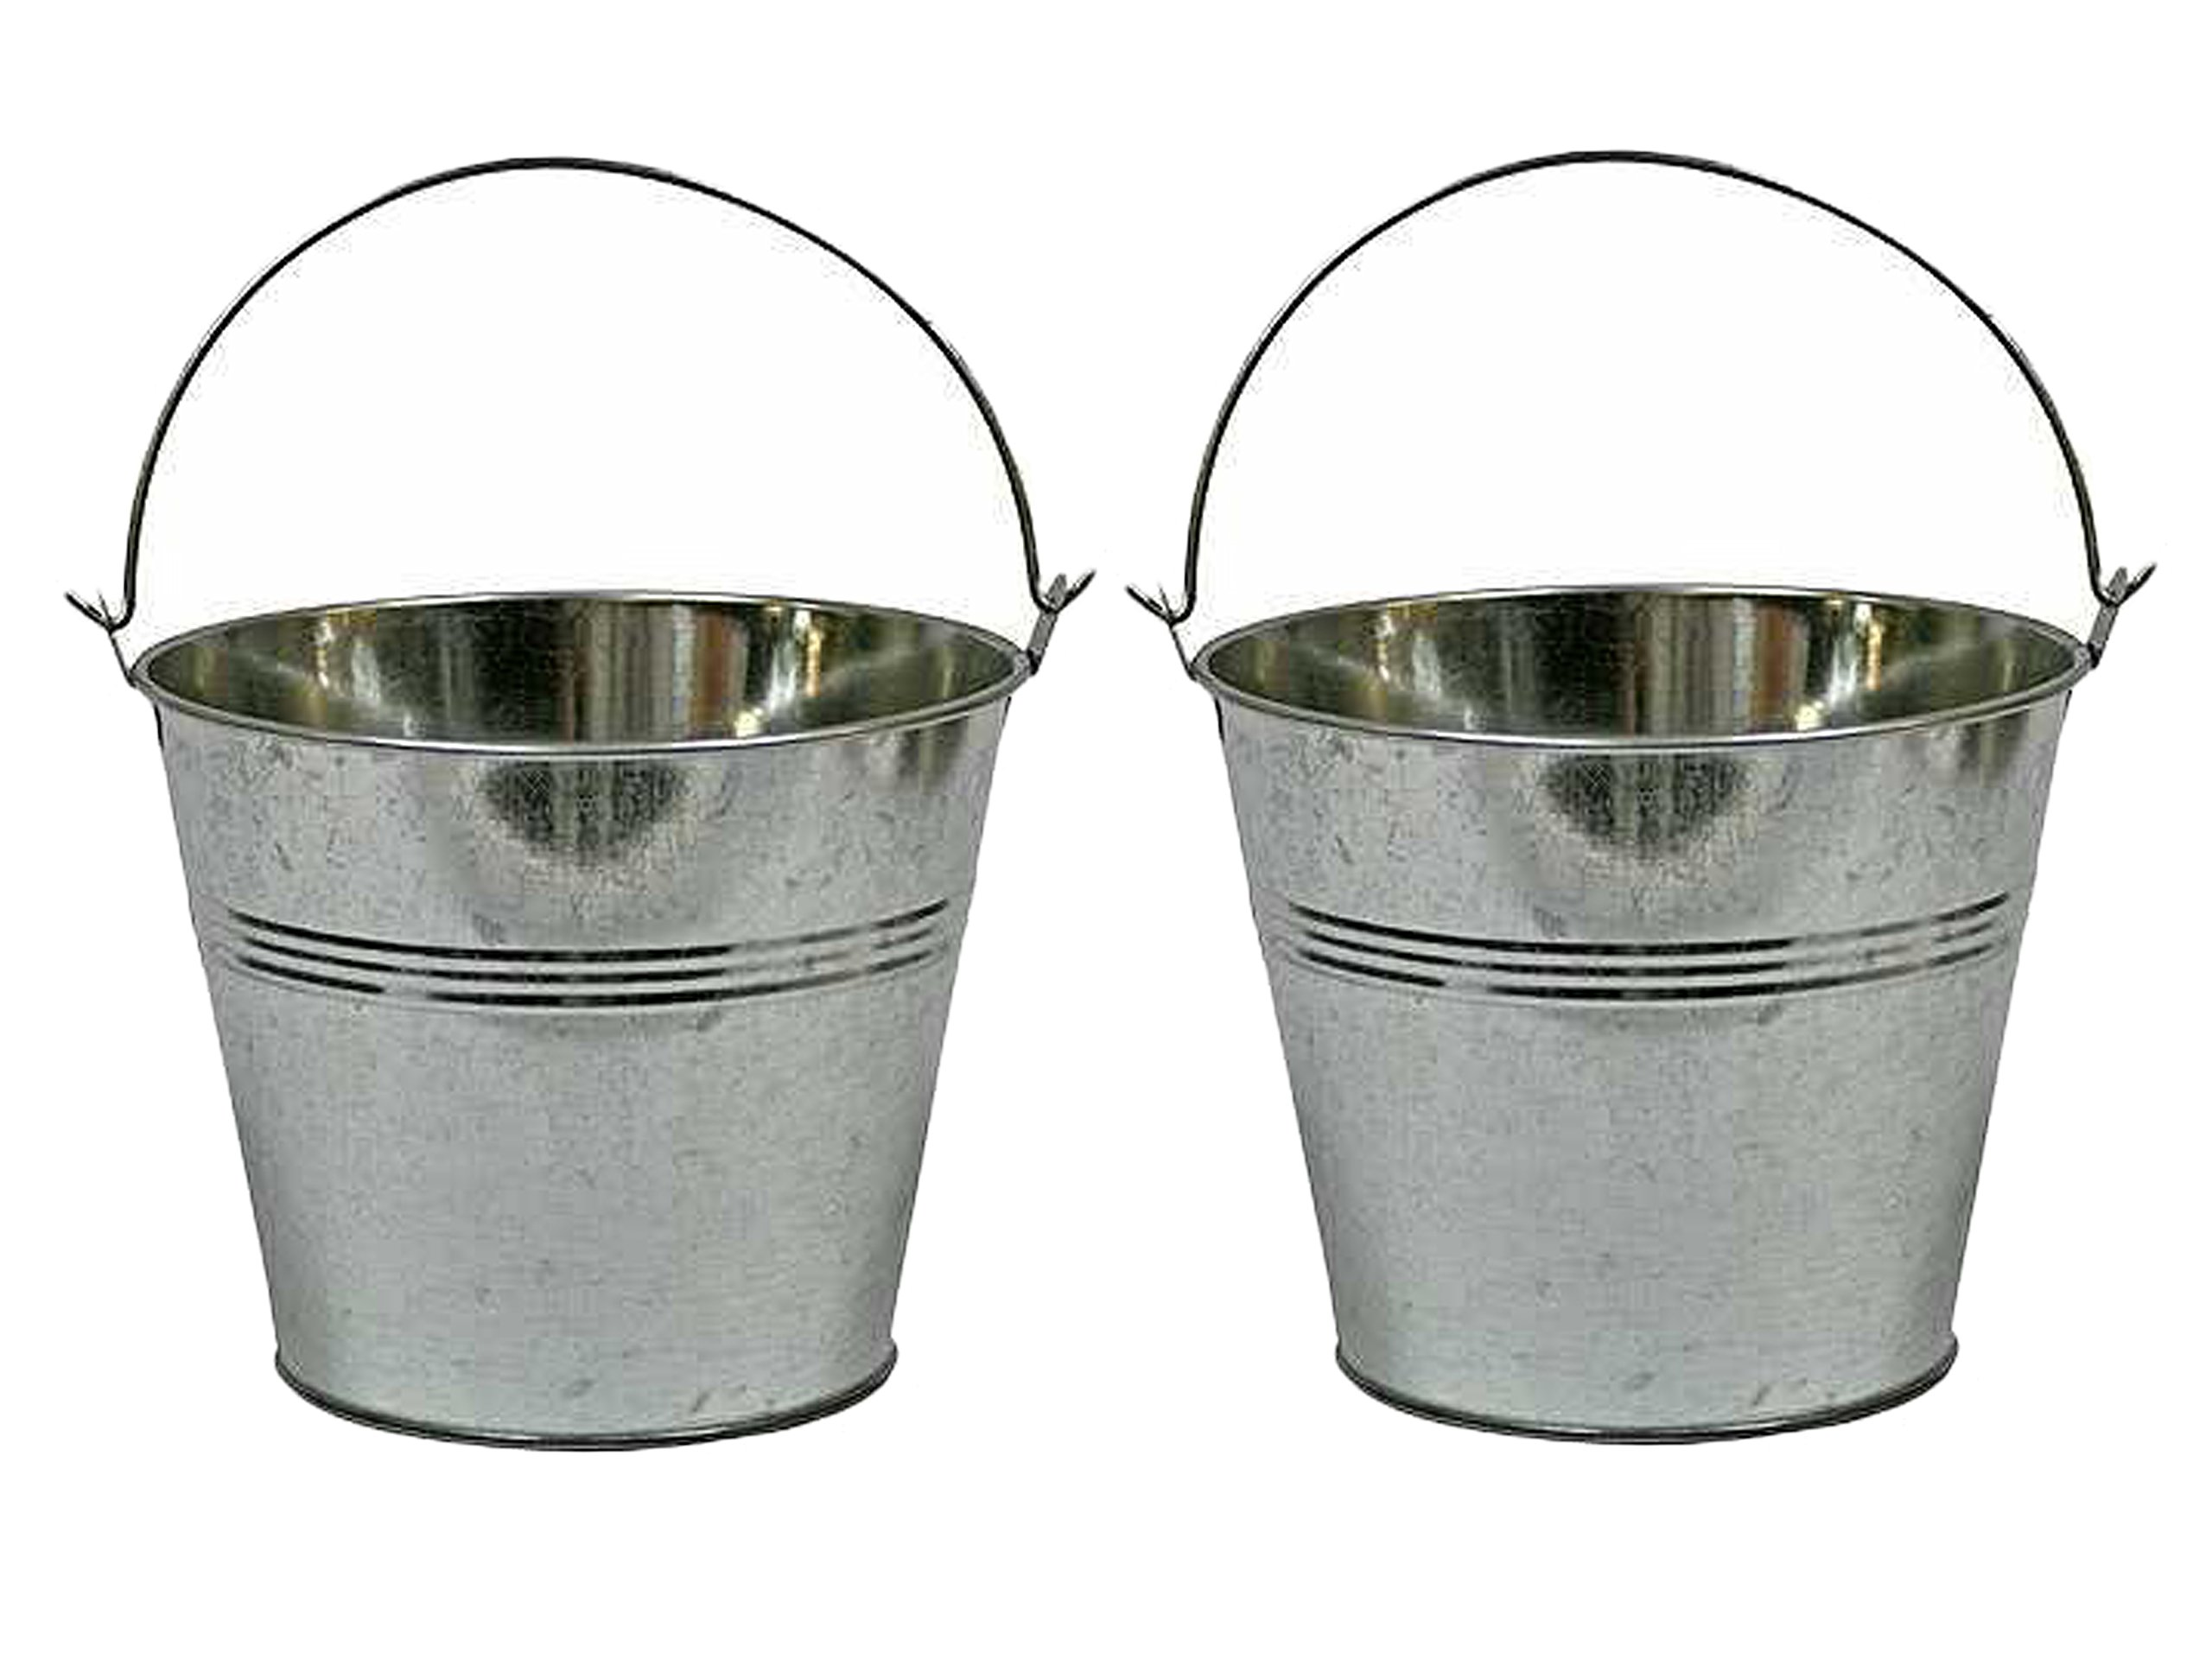 2 Set of 2 Galvanized Metal Pail Buckets bundled by Maven Gifts